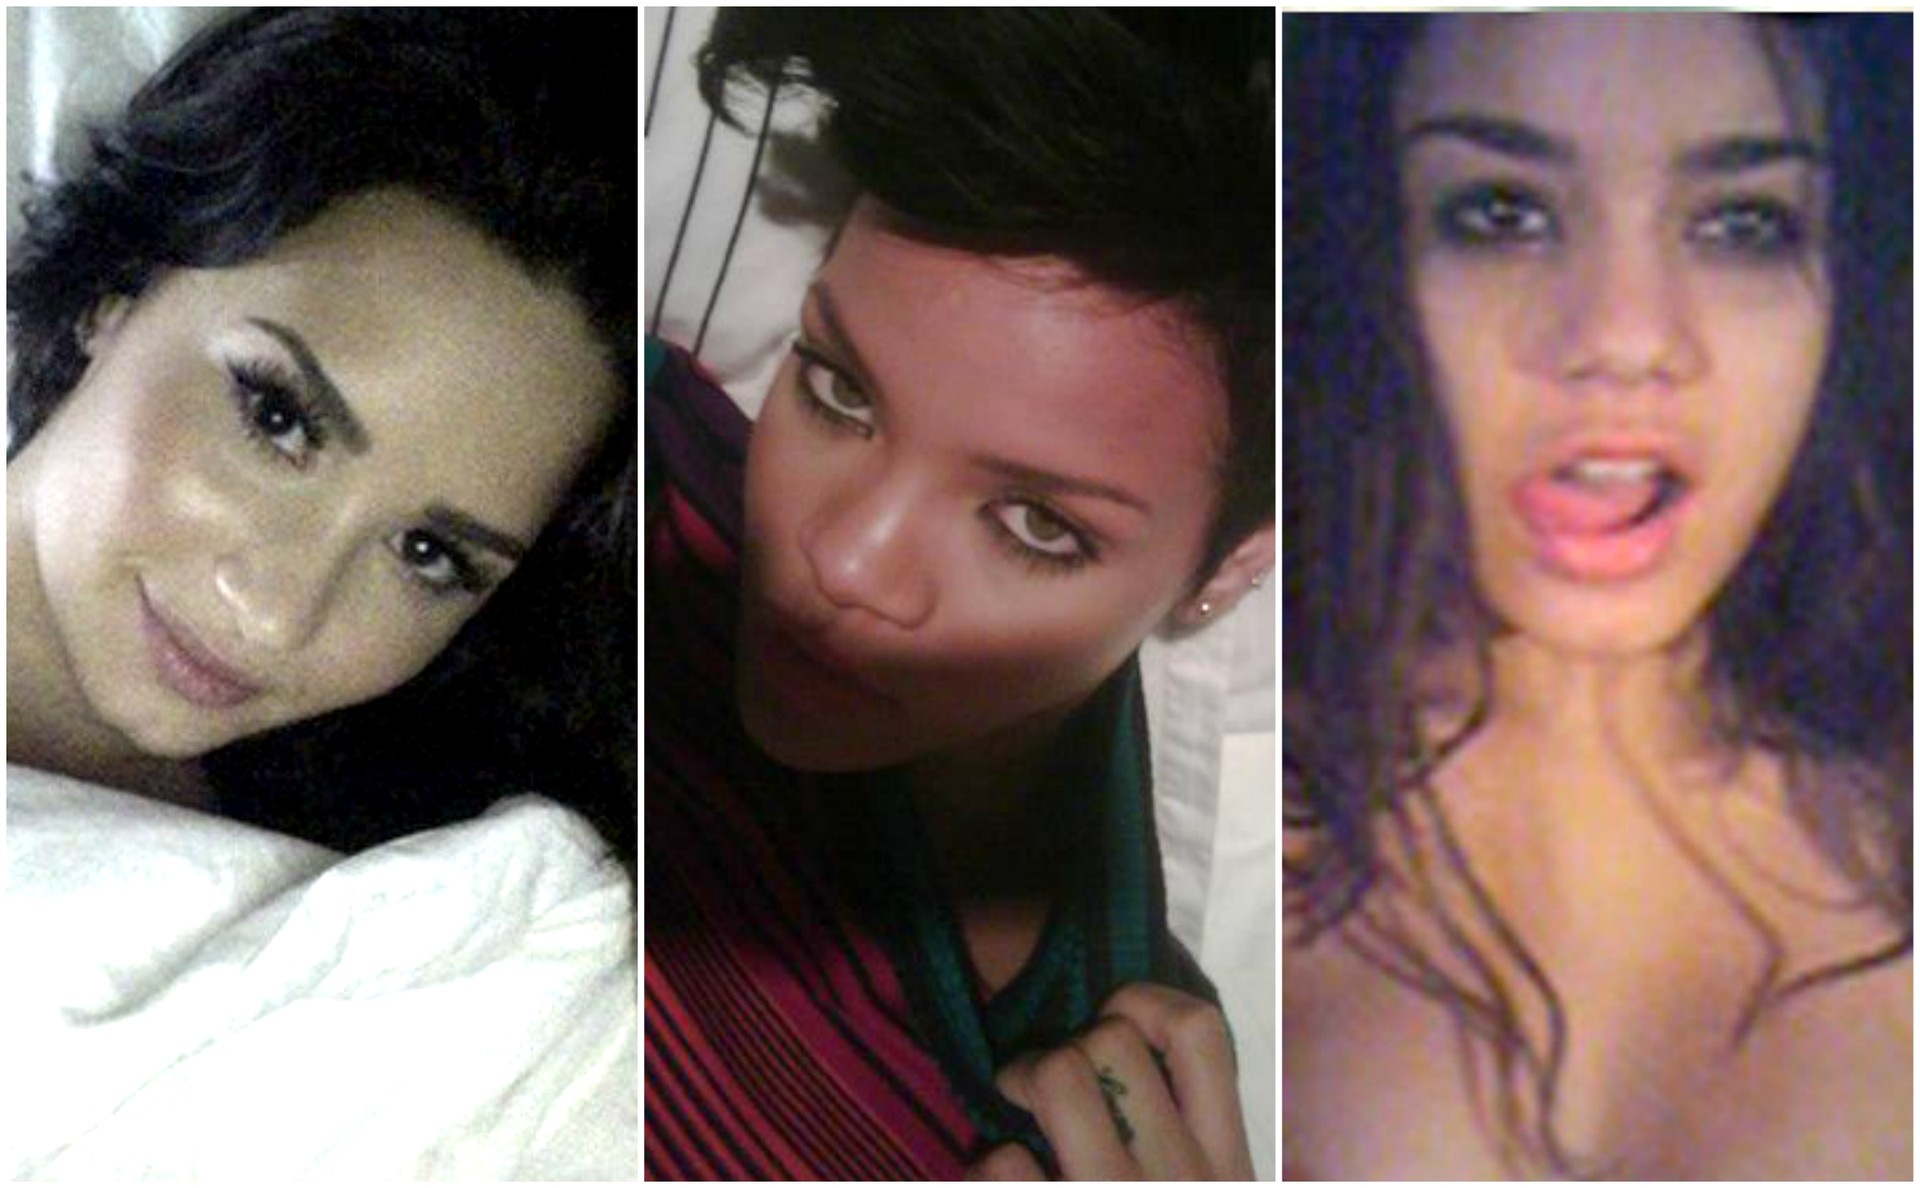 rihanna and vanessa hudgens naked pictures